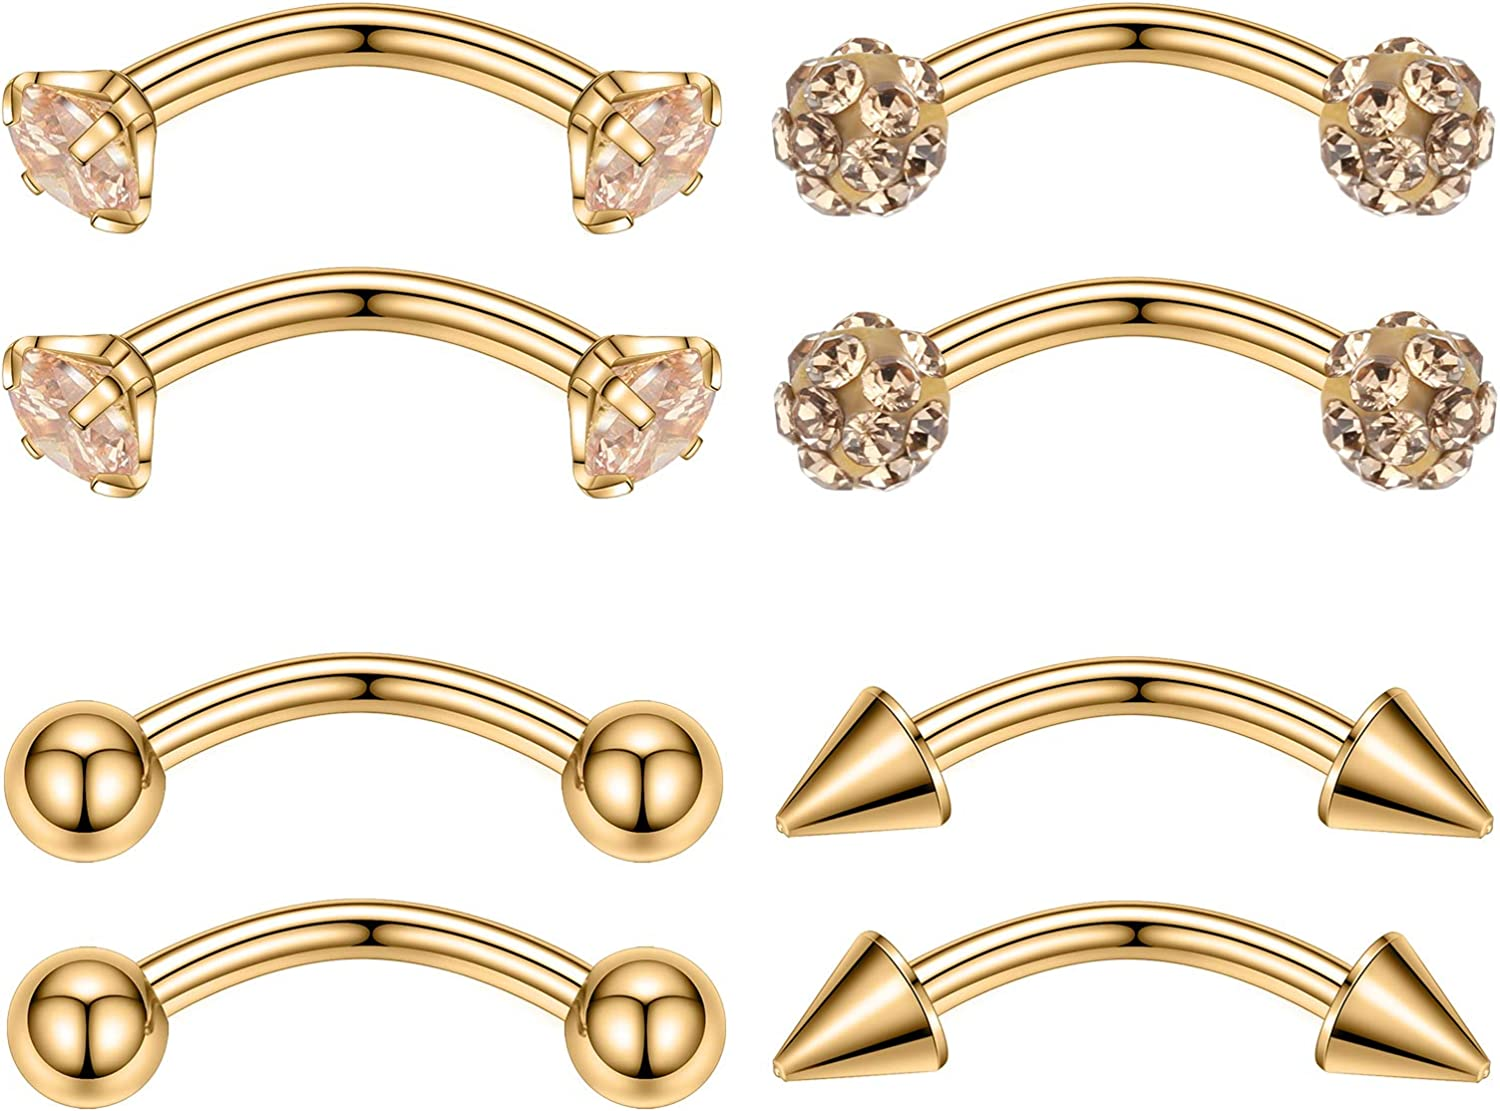 GAGABODY Credence 16G 8mm Eyebrow Daith Outstanding Rook Spark Earrings Gem Prong Set